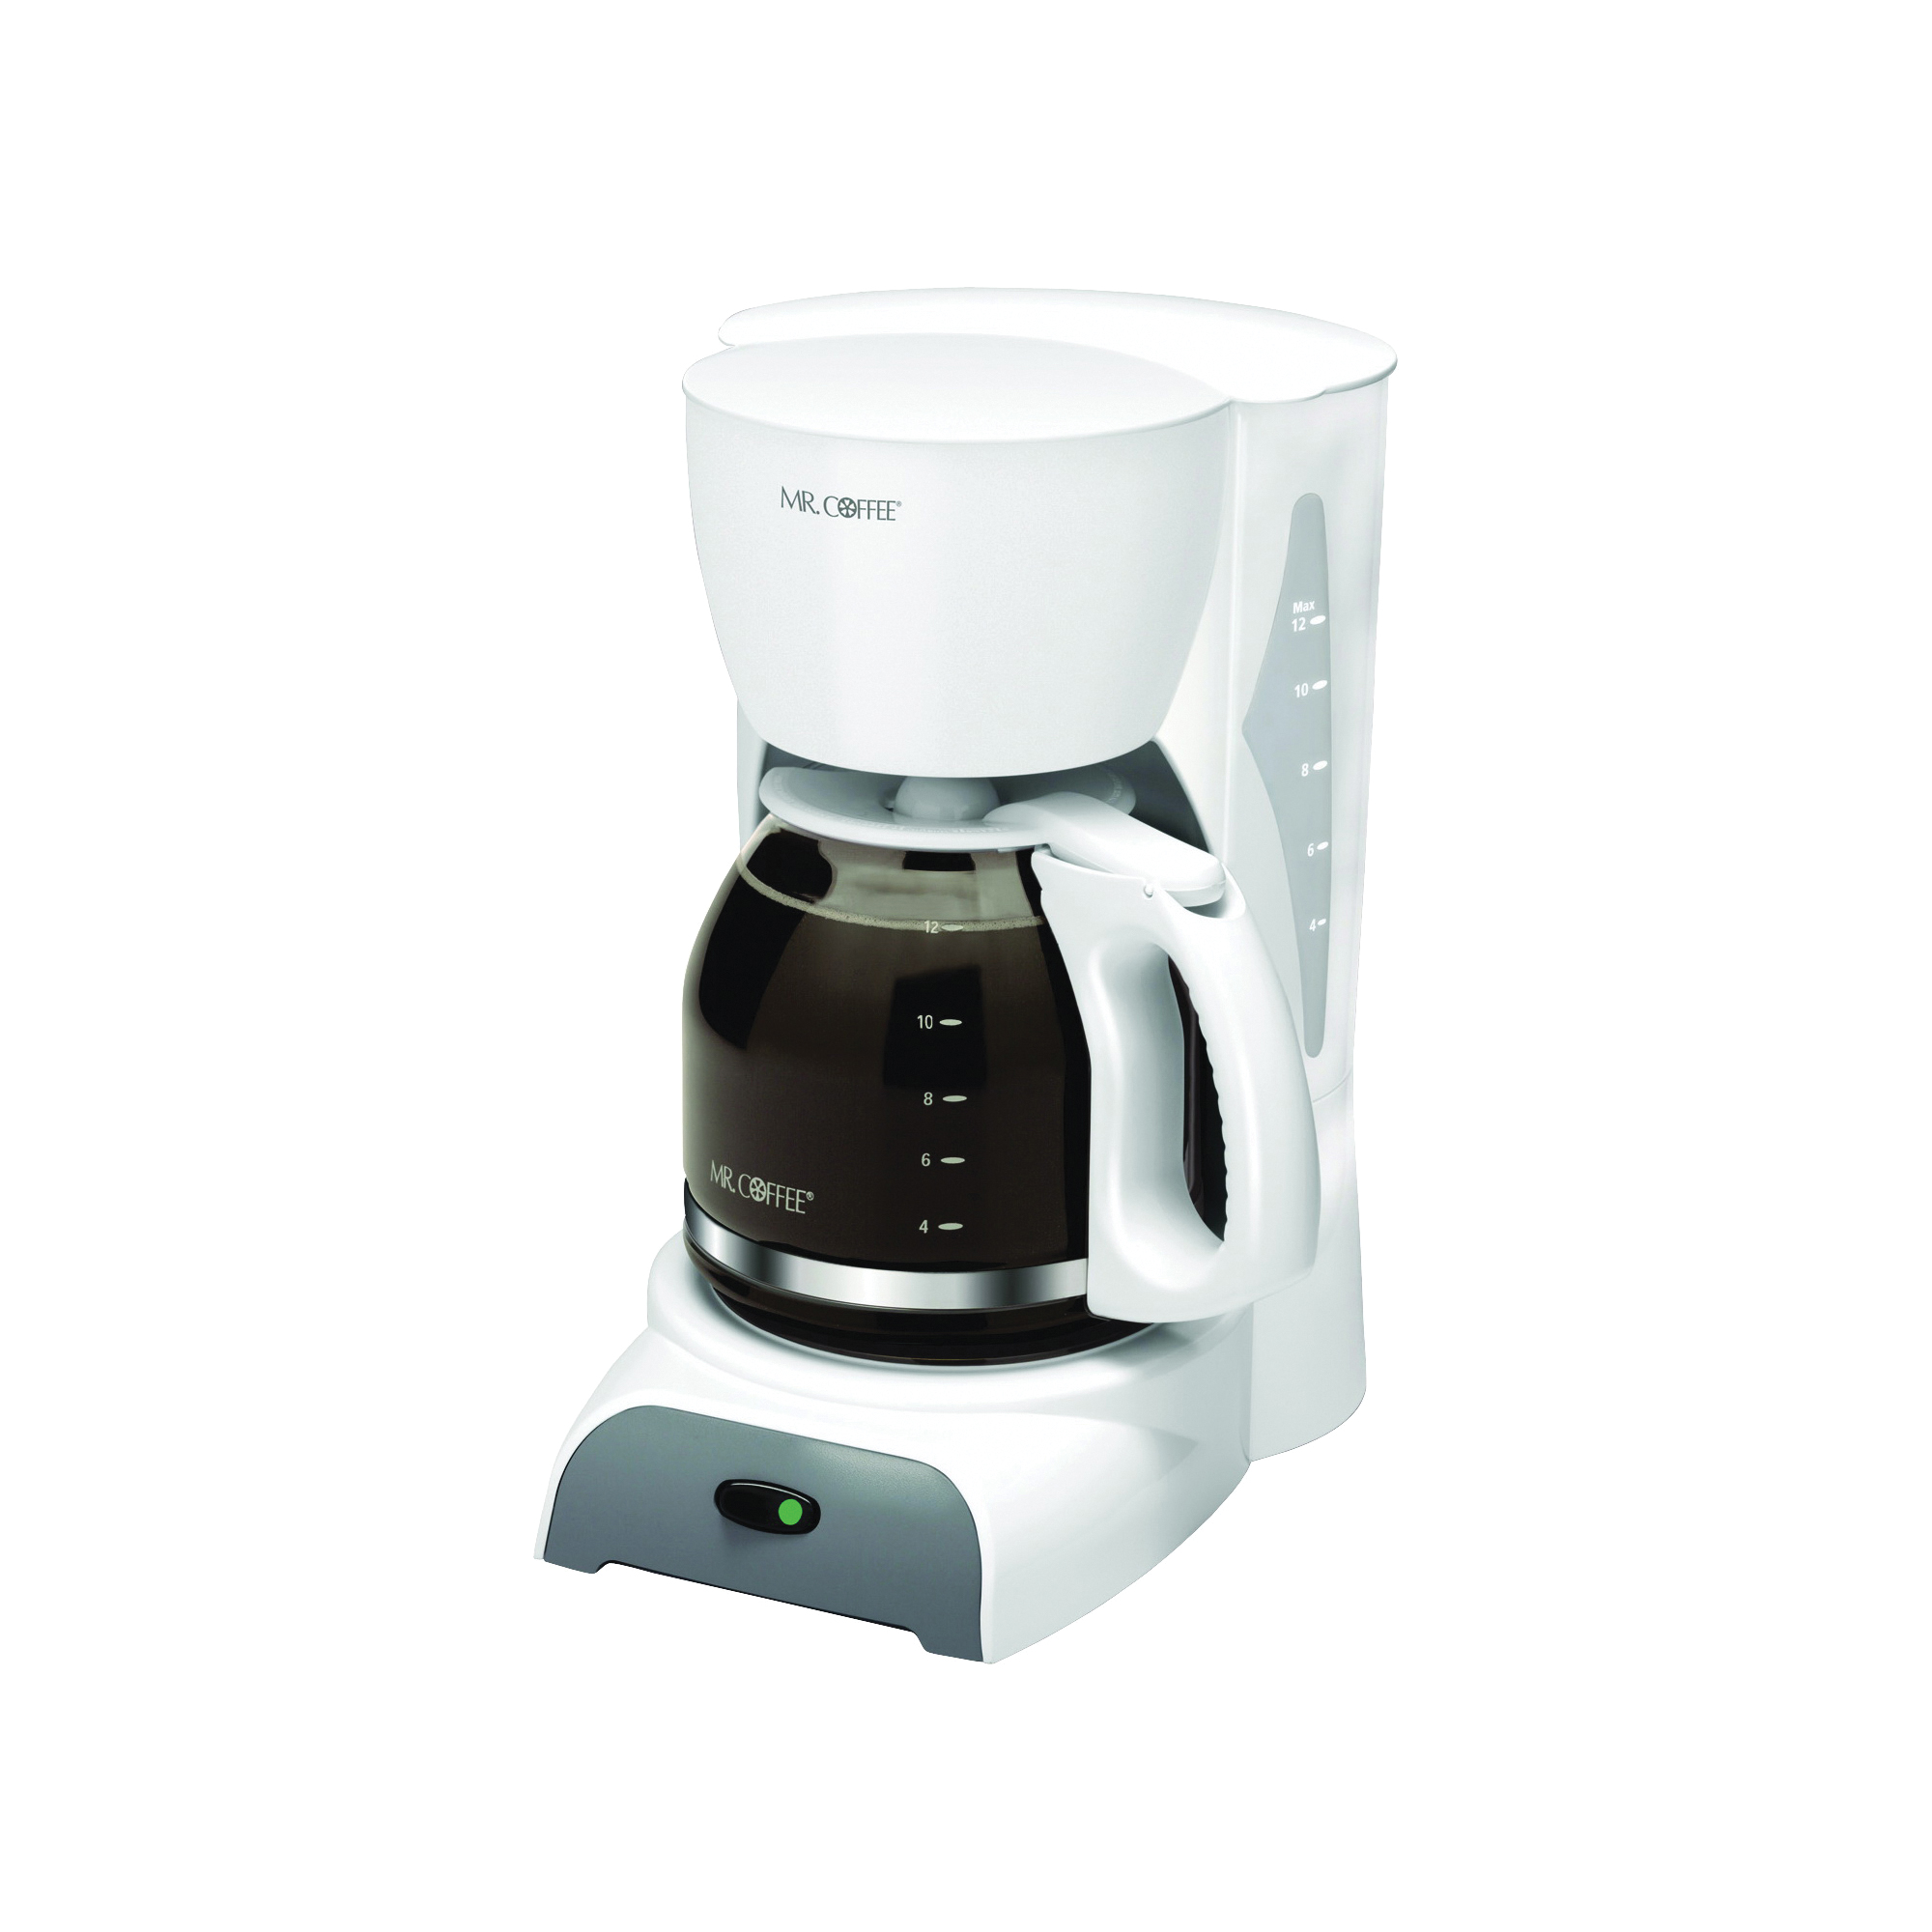 Picture of Mr. Coffee SK12-RB Coffee Maker, 12 Cups Capacity, 900 W, White